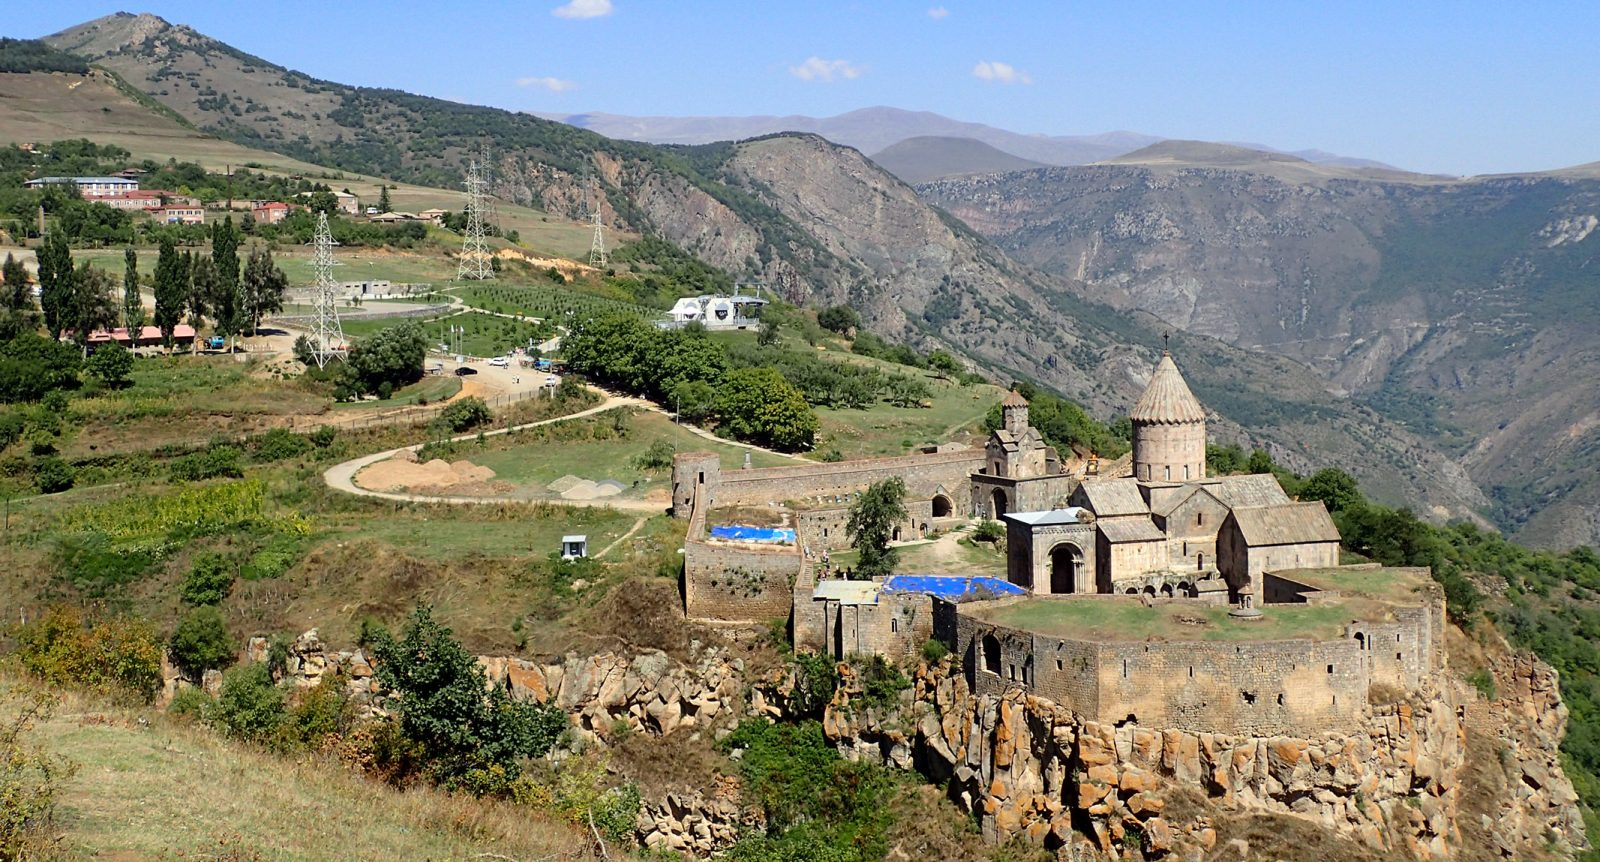 Tatev Monastery, Armenia expedition with Secret Compass, joined by Tom Allen of the Transcaucasian trail7